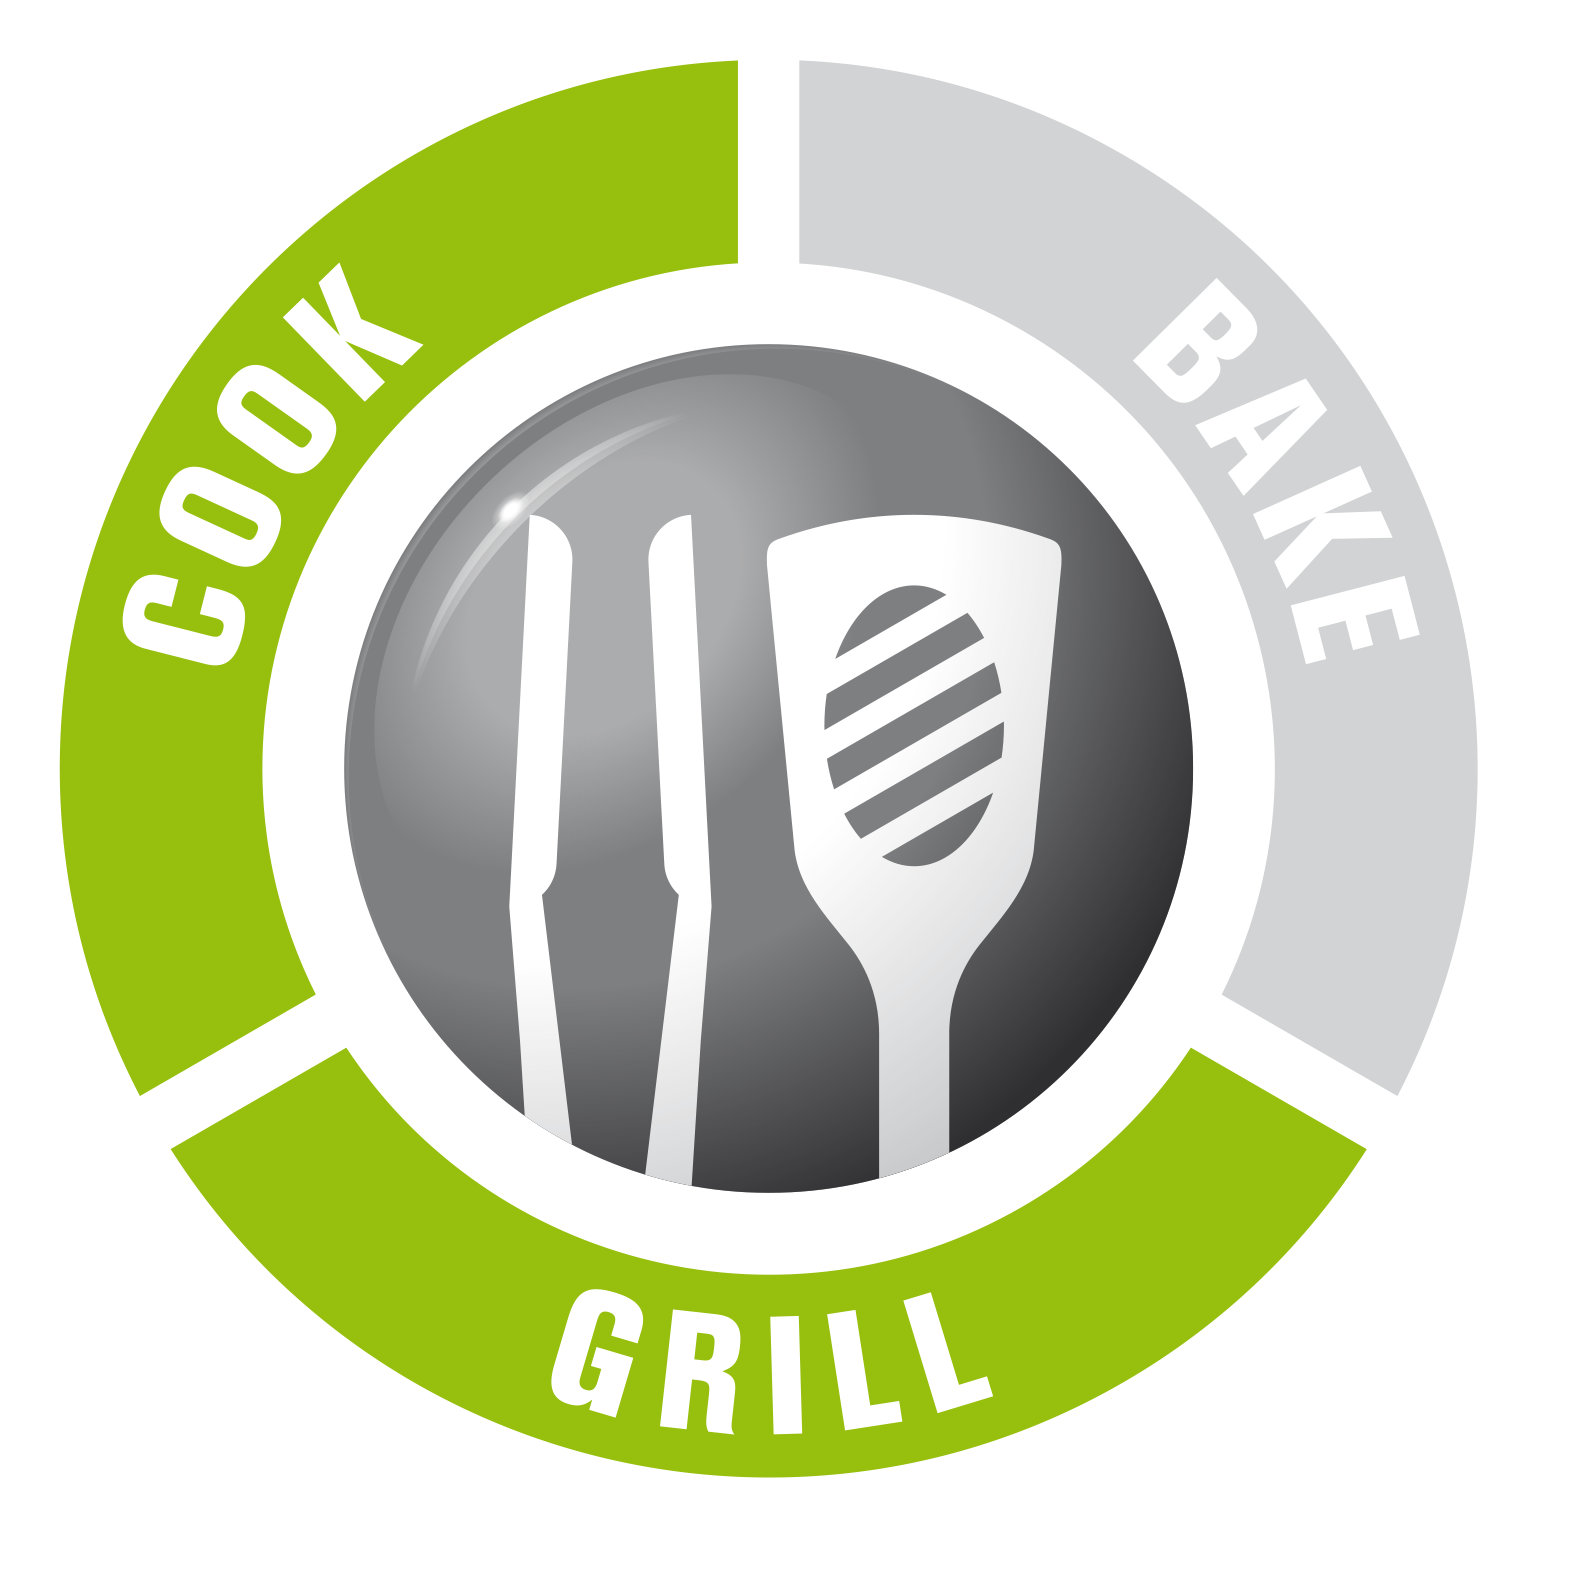 Grill, Cook - Outdoorchef